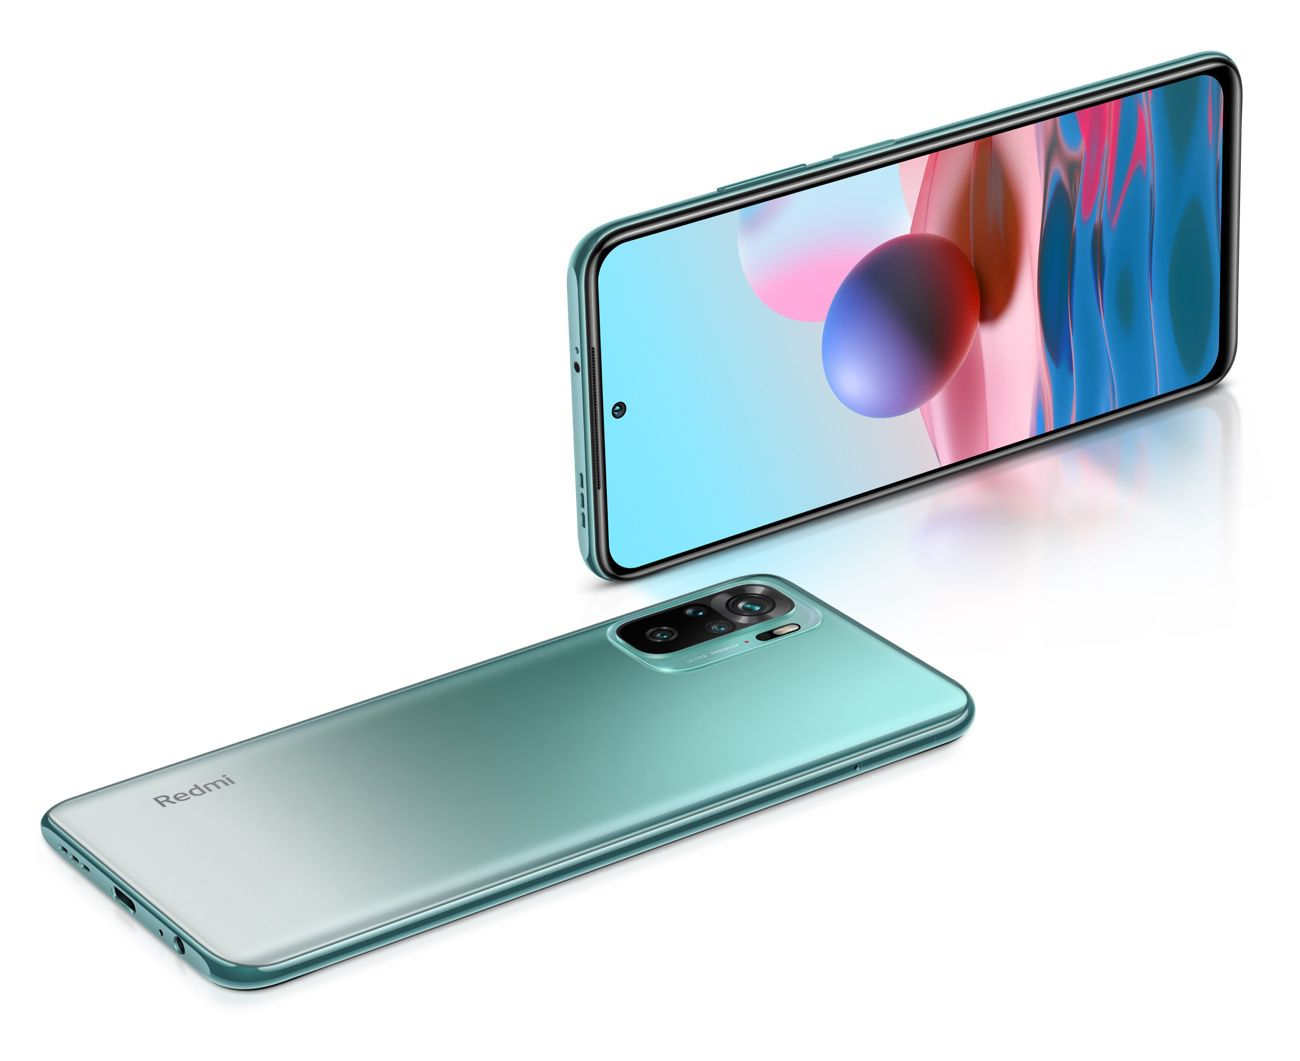 mg fb1134f9 w1979 w828 w1300 - Xiaomi: the Redmi Note 10 announced at 199 €, the Mi 11 on sale from 749 € - iGeneration